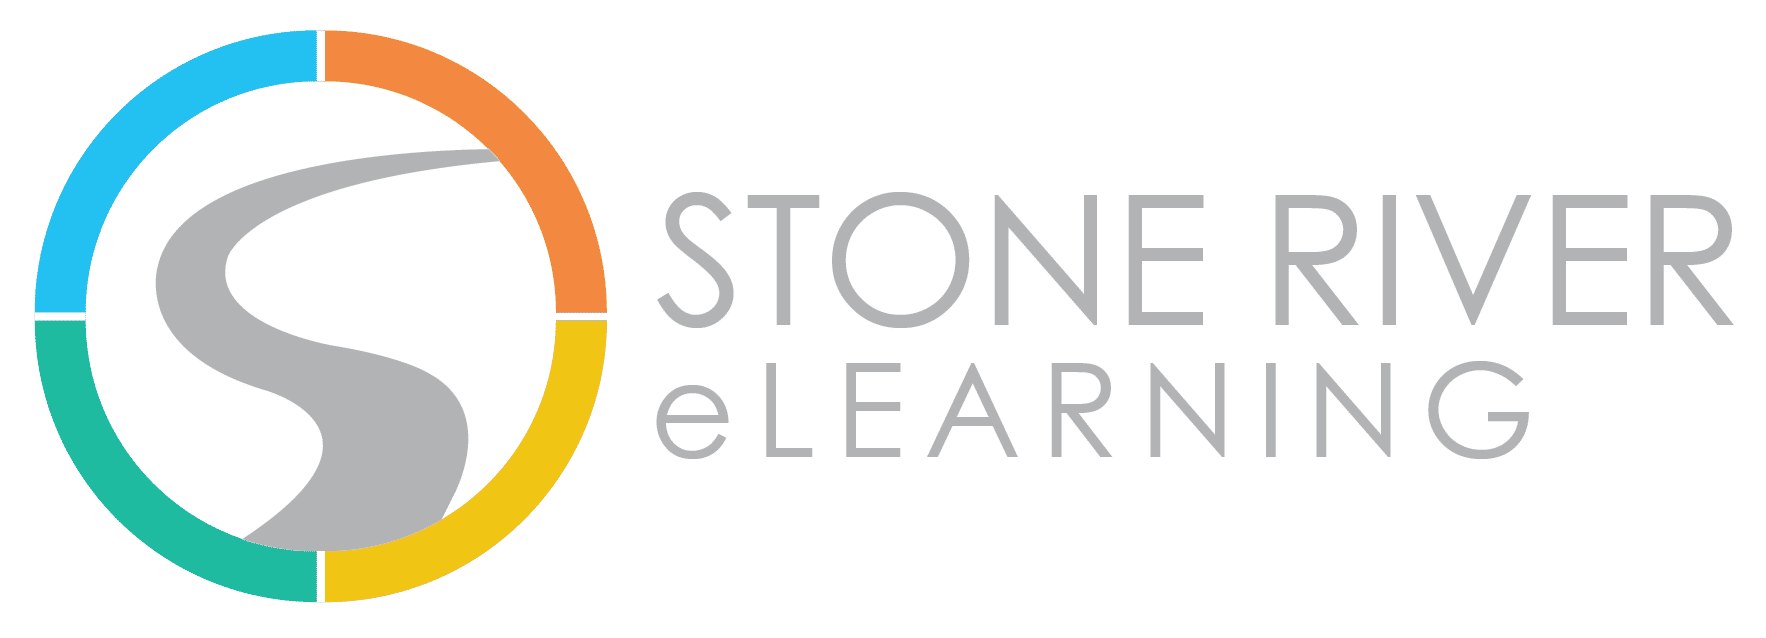 [StoneRivereLearning] Bash Scripting and Shell Programming